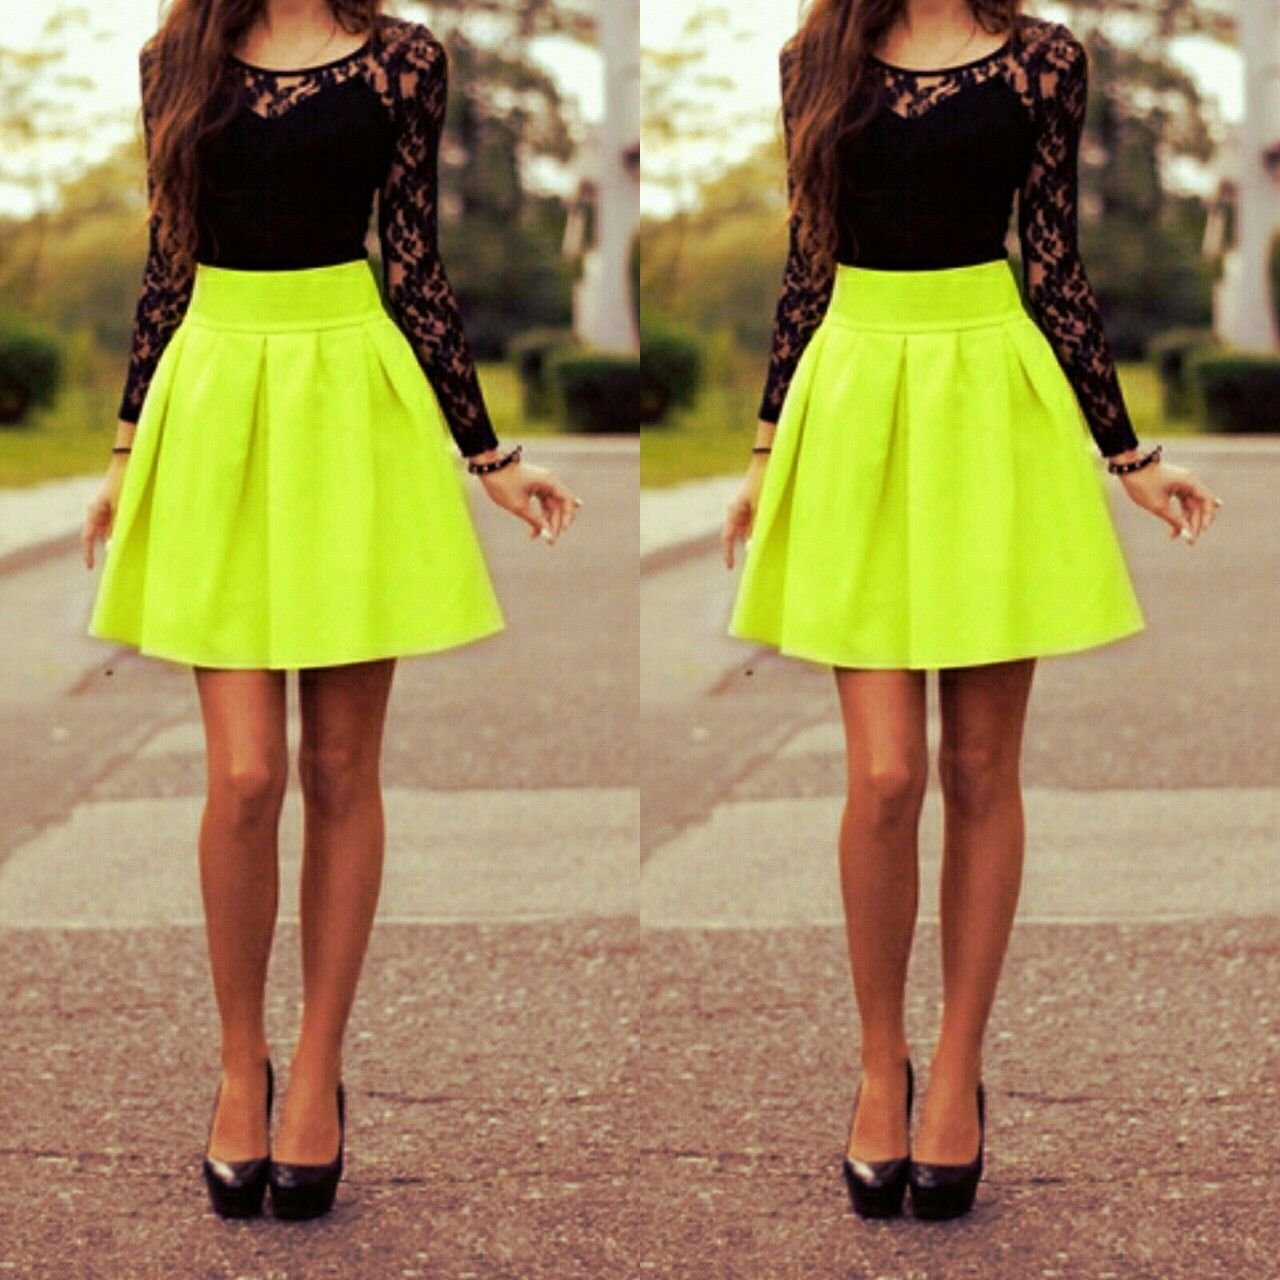 Maxi Skirt Outfits Tumblr 2014-2015 | Fashion Trends 2014-2015 | Clothes | Pinterest | December ...